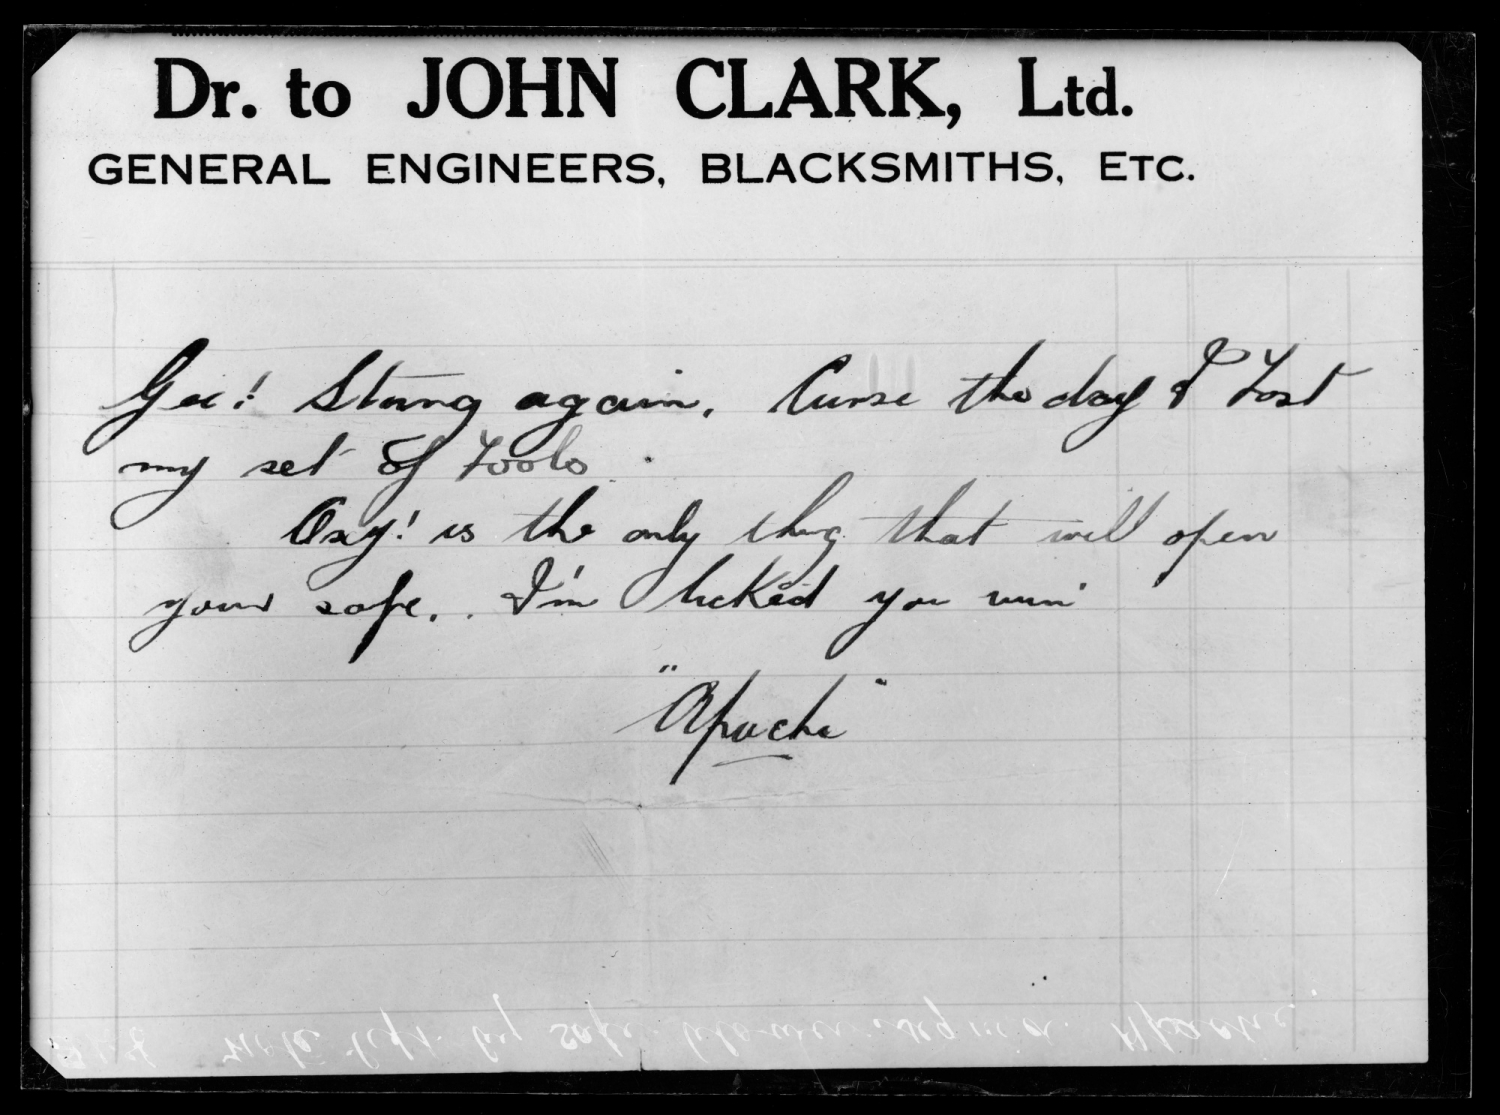 """Apache"" signed note left with blown safe, Dr to John Clark notepaper, c 1920s. Apache was Jack Dennison an 18 year old thief and he left this note when he broke into Cremo Coffee Co. on the 14th April 1925."